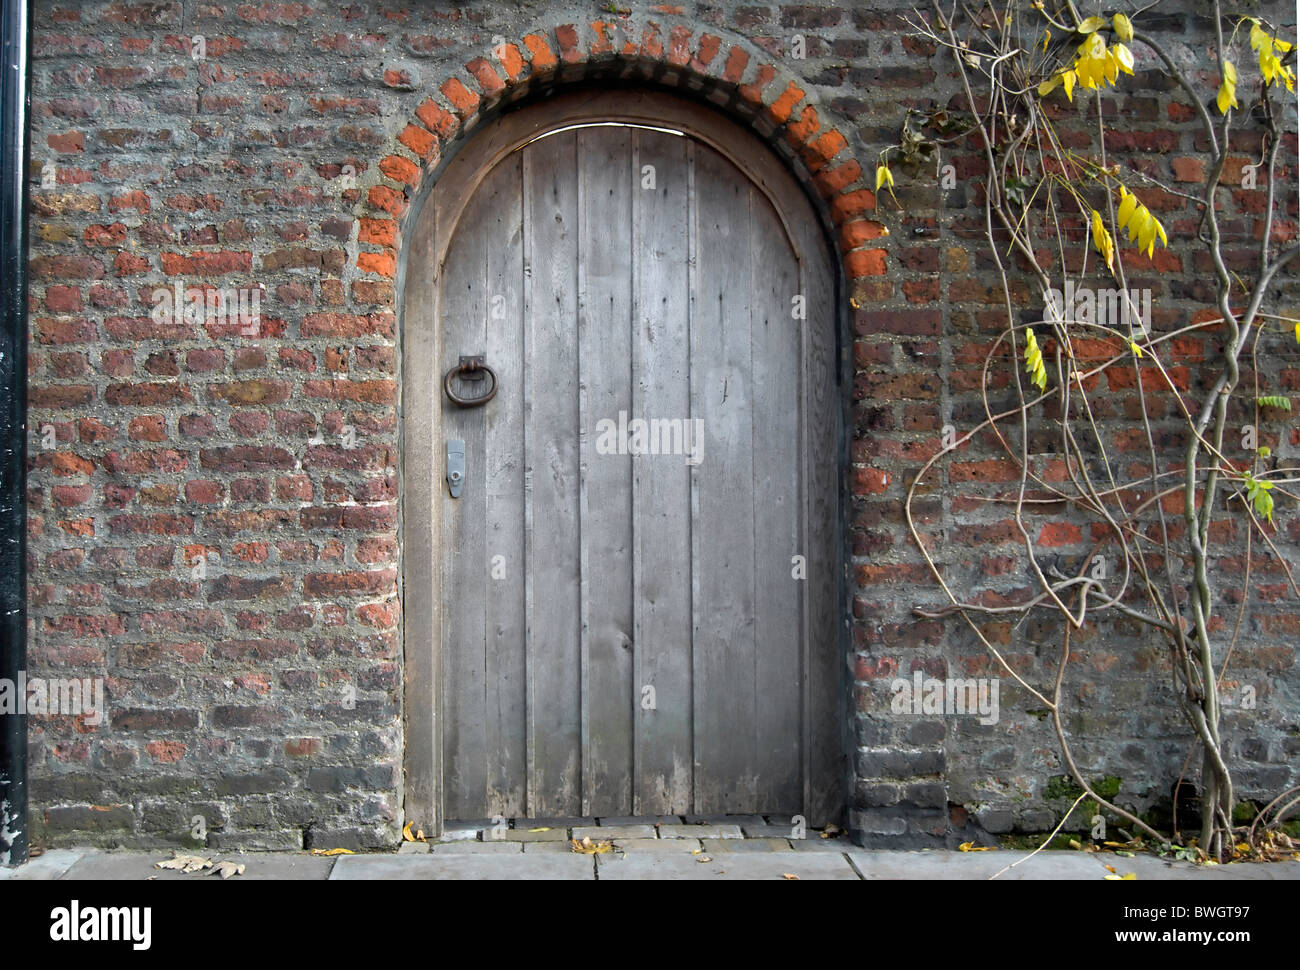 arched brickwork stock photos arched brickwork stock images alamy